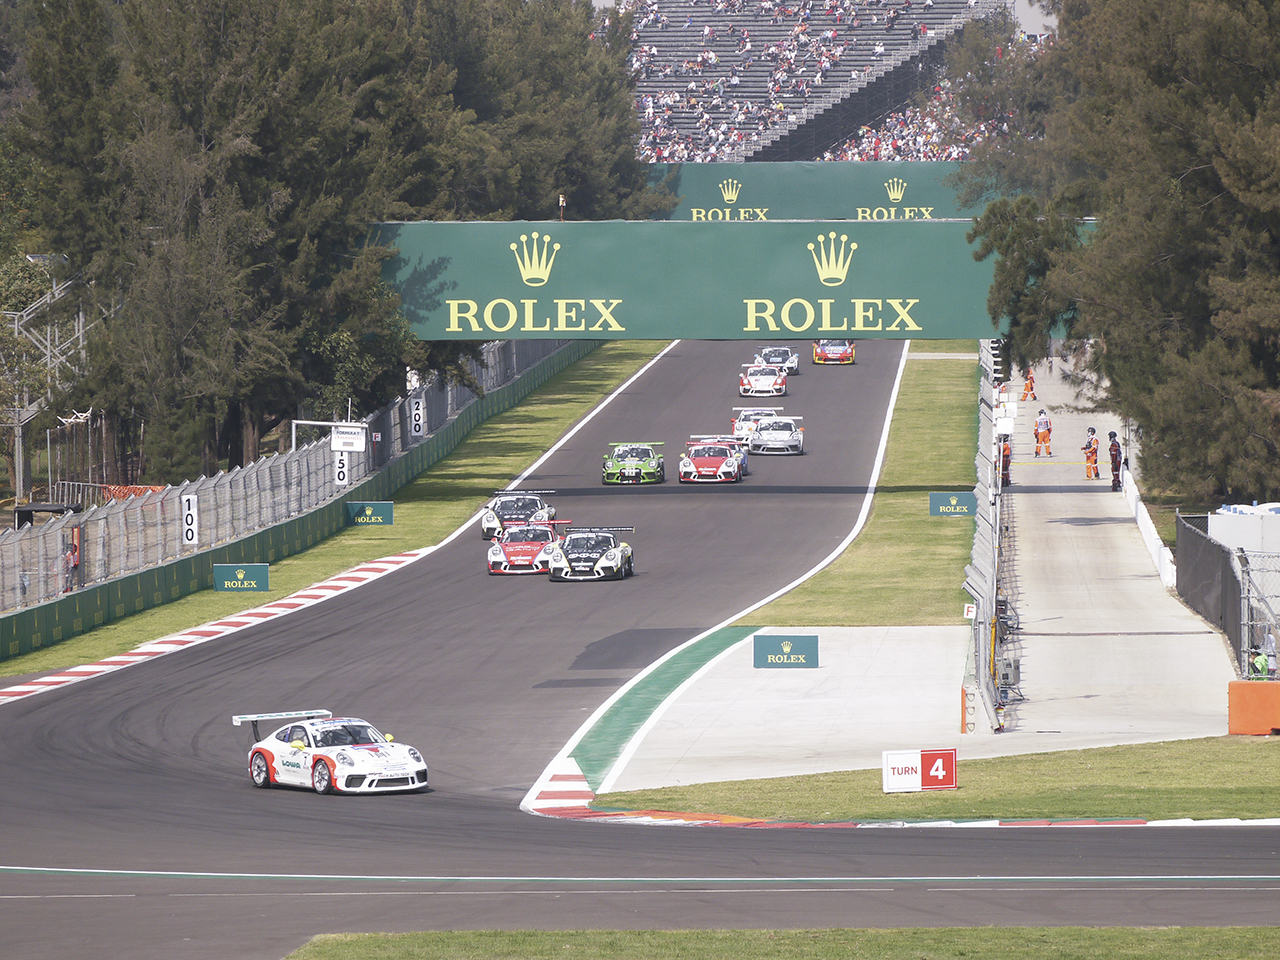 Matt Campbell leads the field into turn 4 on his way to a win in the first of the weekend's two Porsche Supercup races.